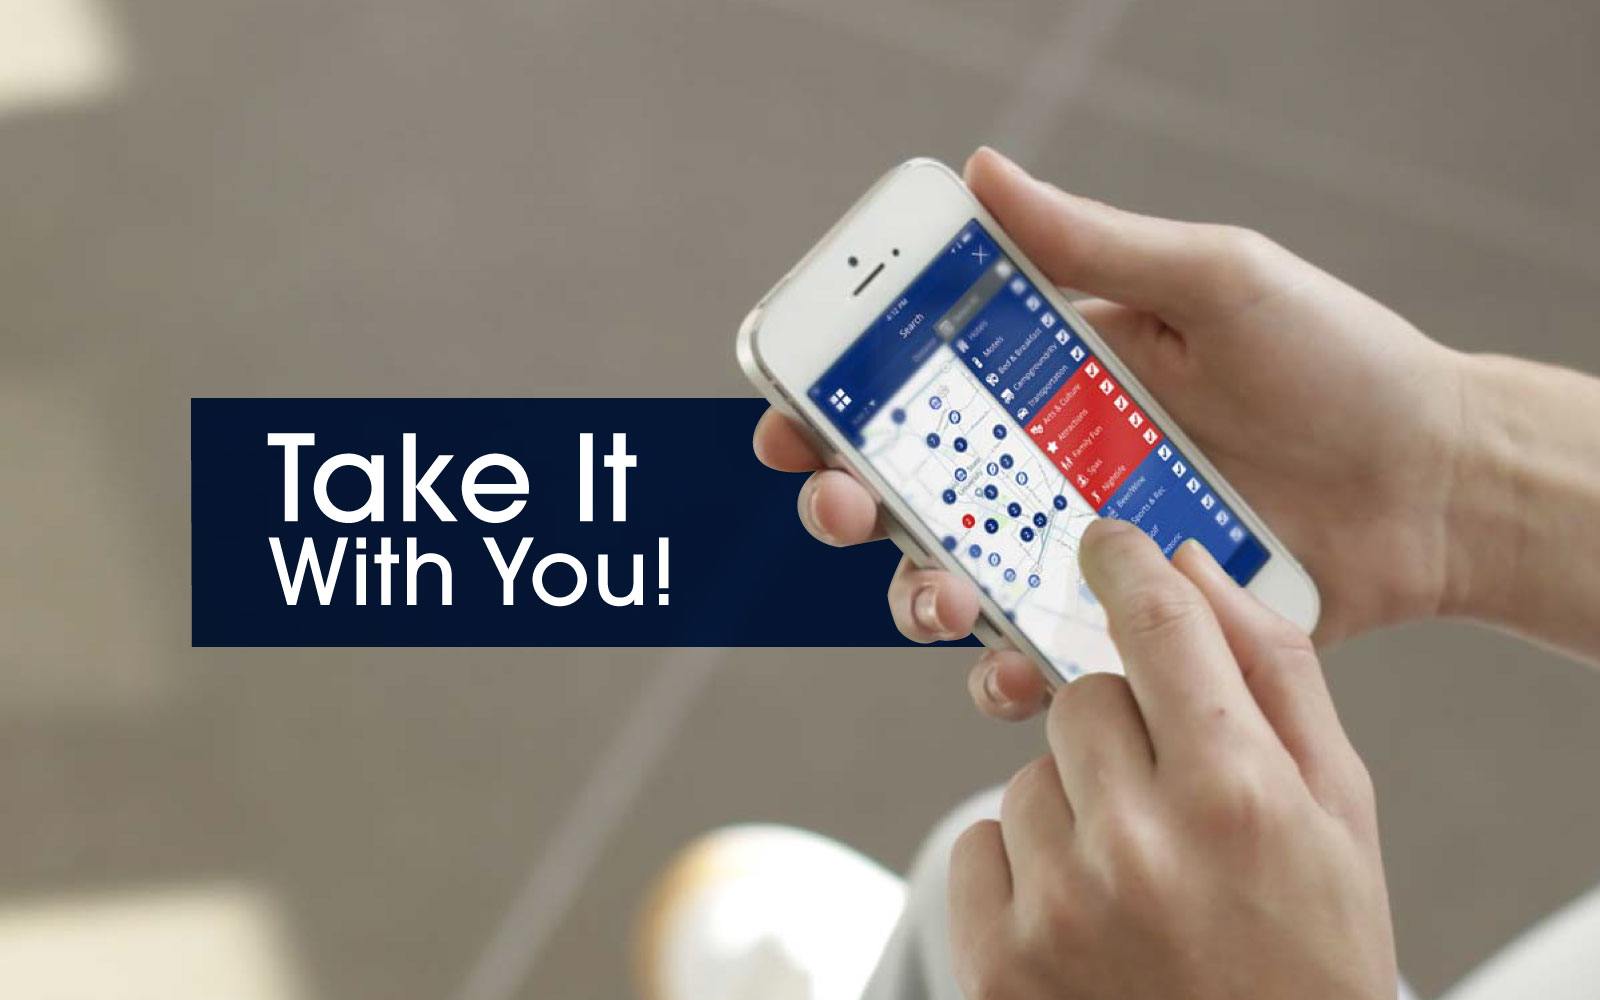 Take Our App with You!